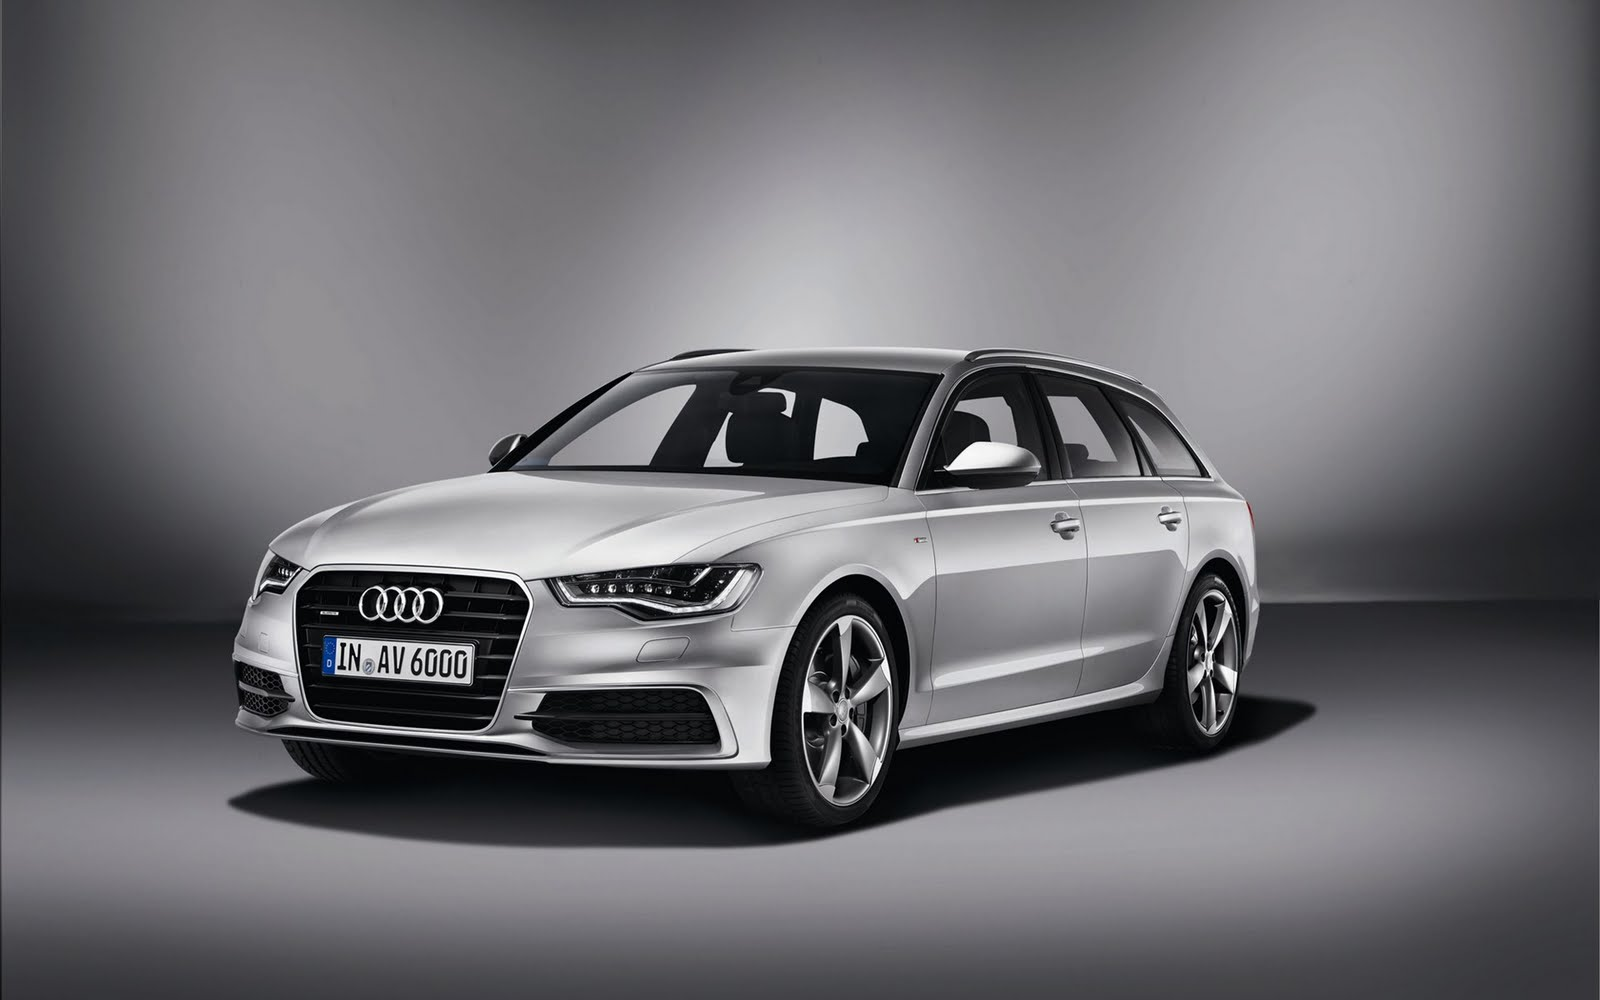 audi a6 avant 2012 spec and review car wallpaper car pictures. Black Bedroom Furniture Sets. Home Design Ideas